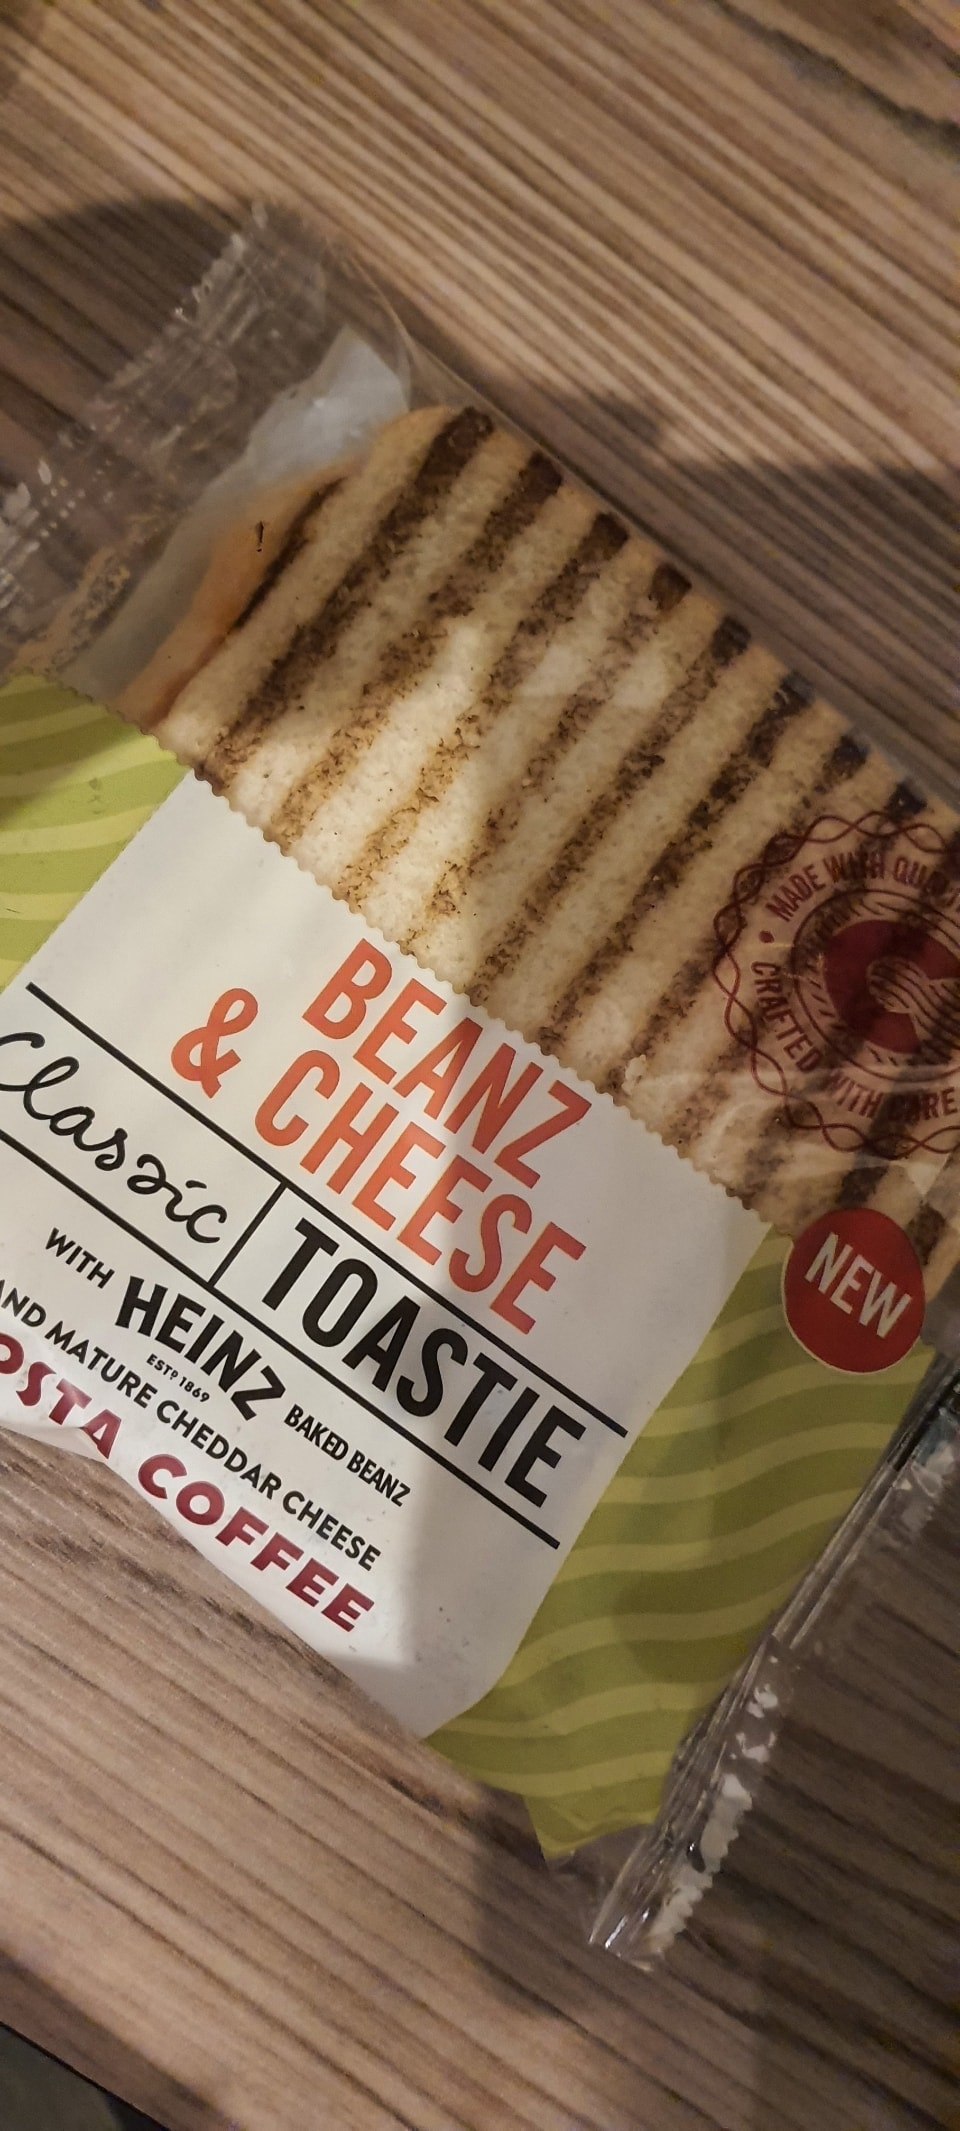 Costa bean and cheese toasties